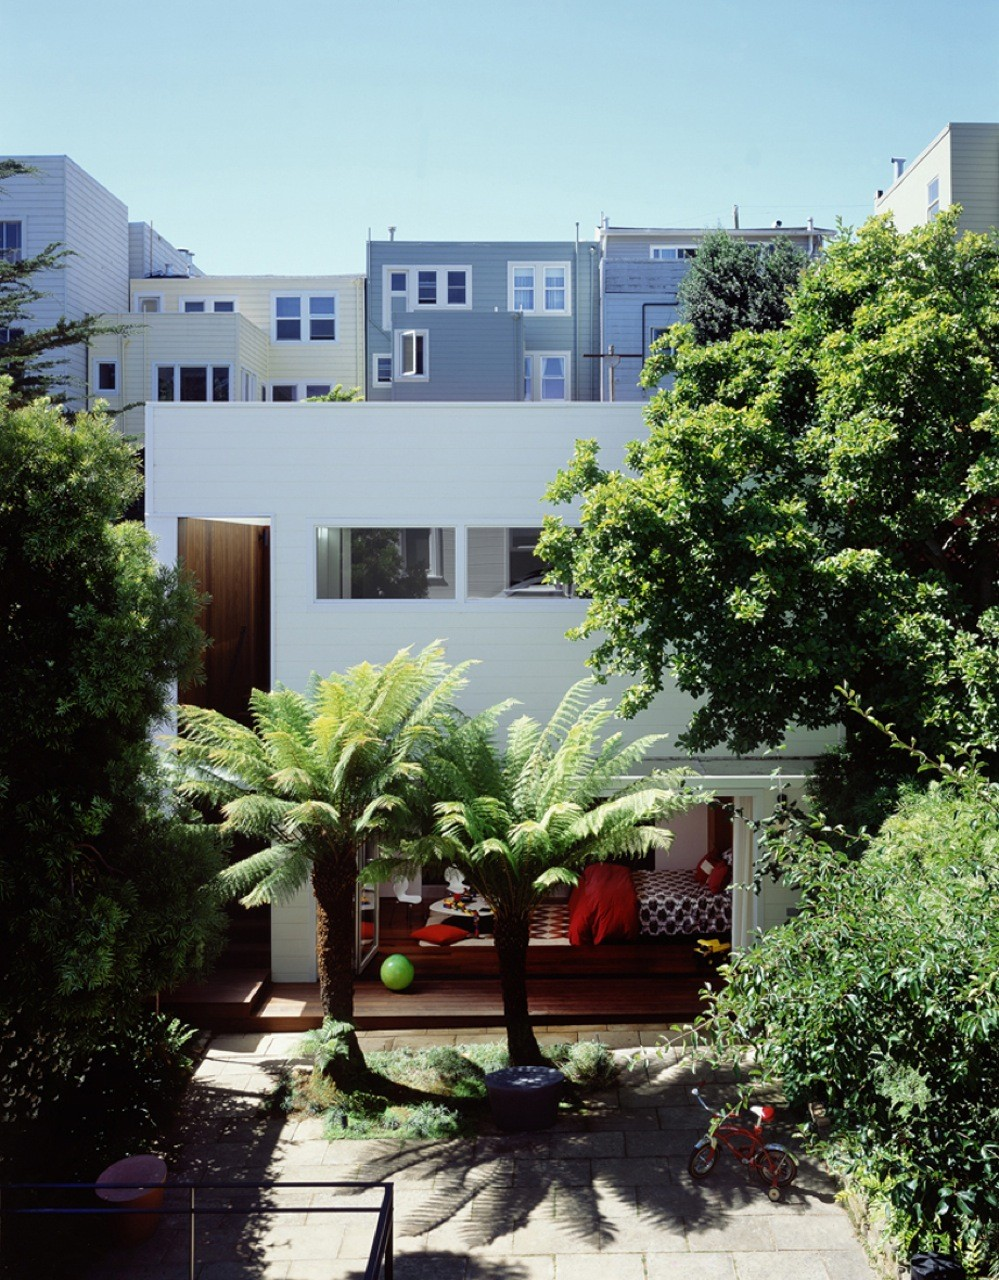 Eureka Valley Residence / Cary Bernstein Architect, © Sharon Risedorph